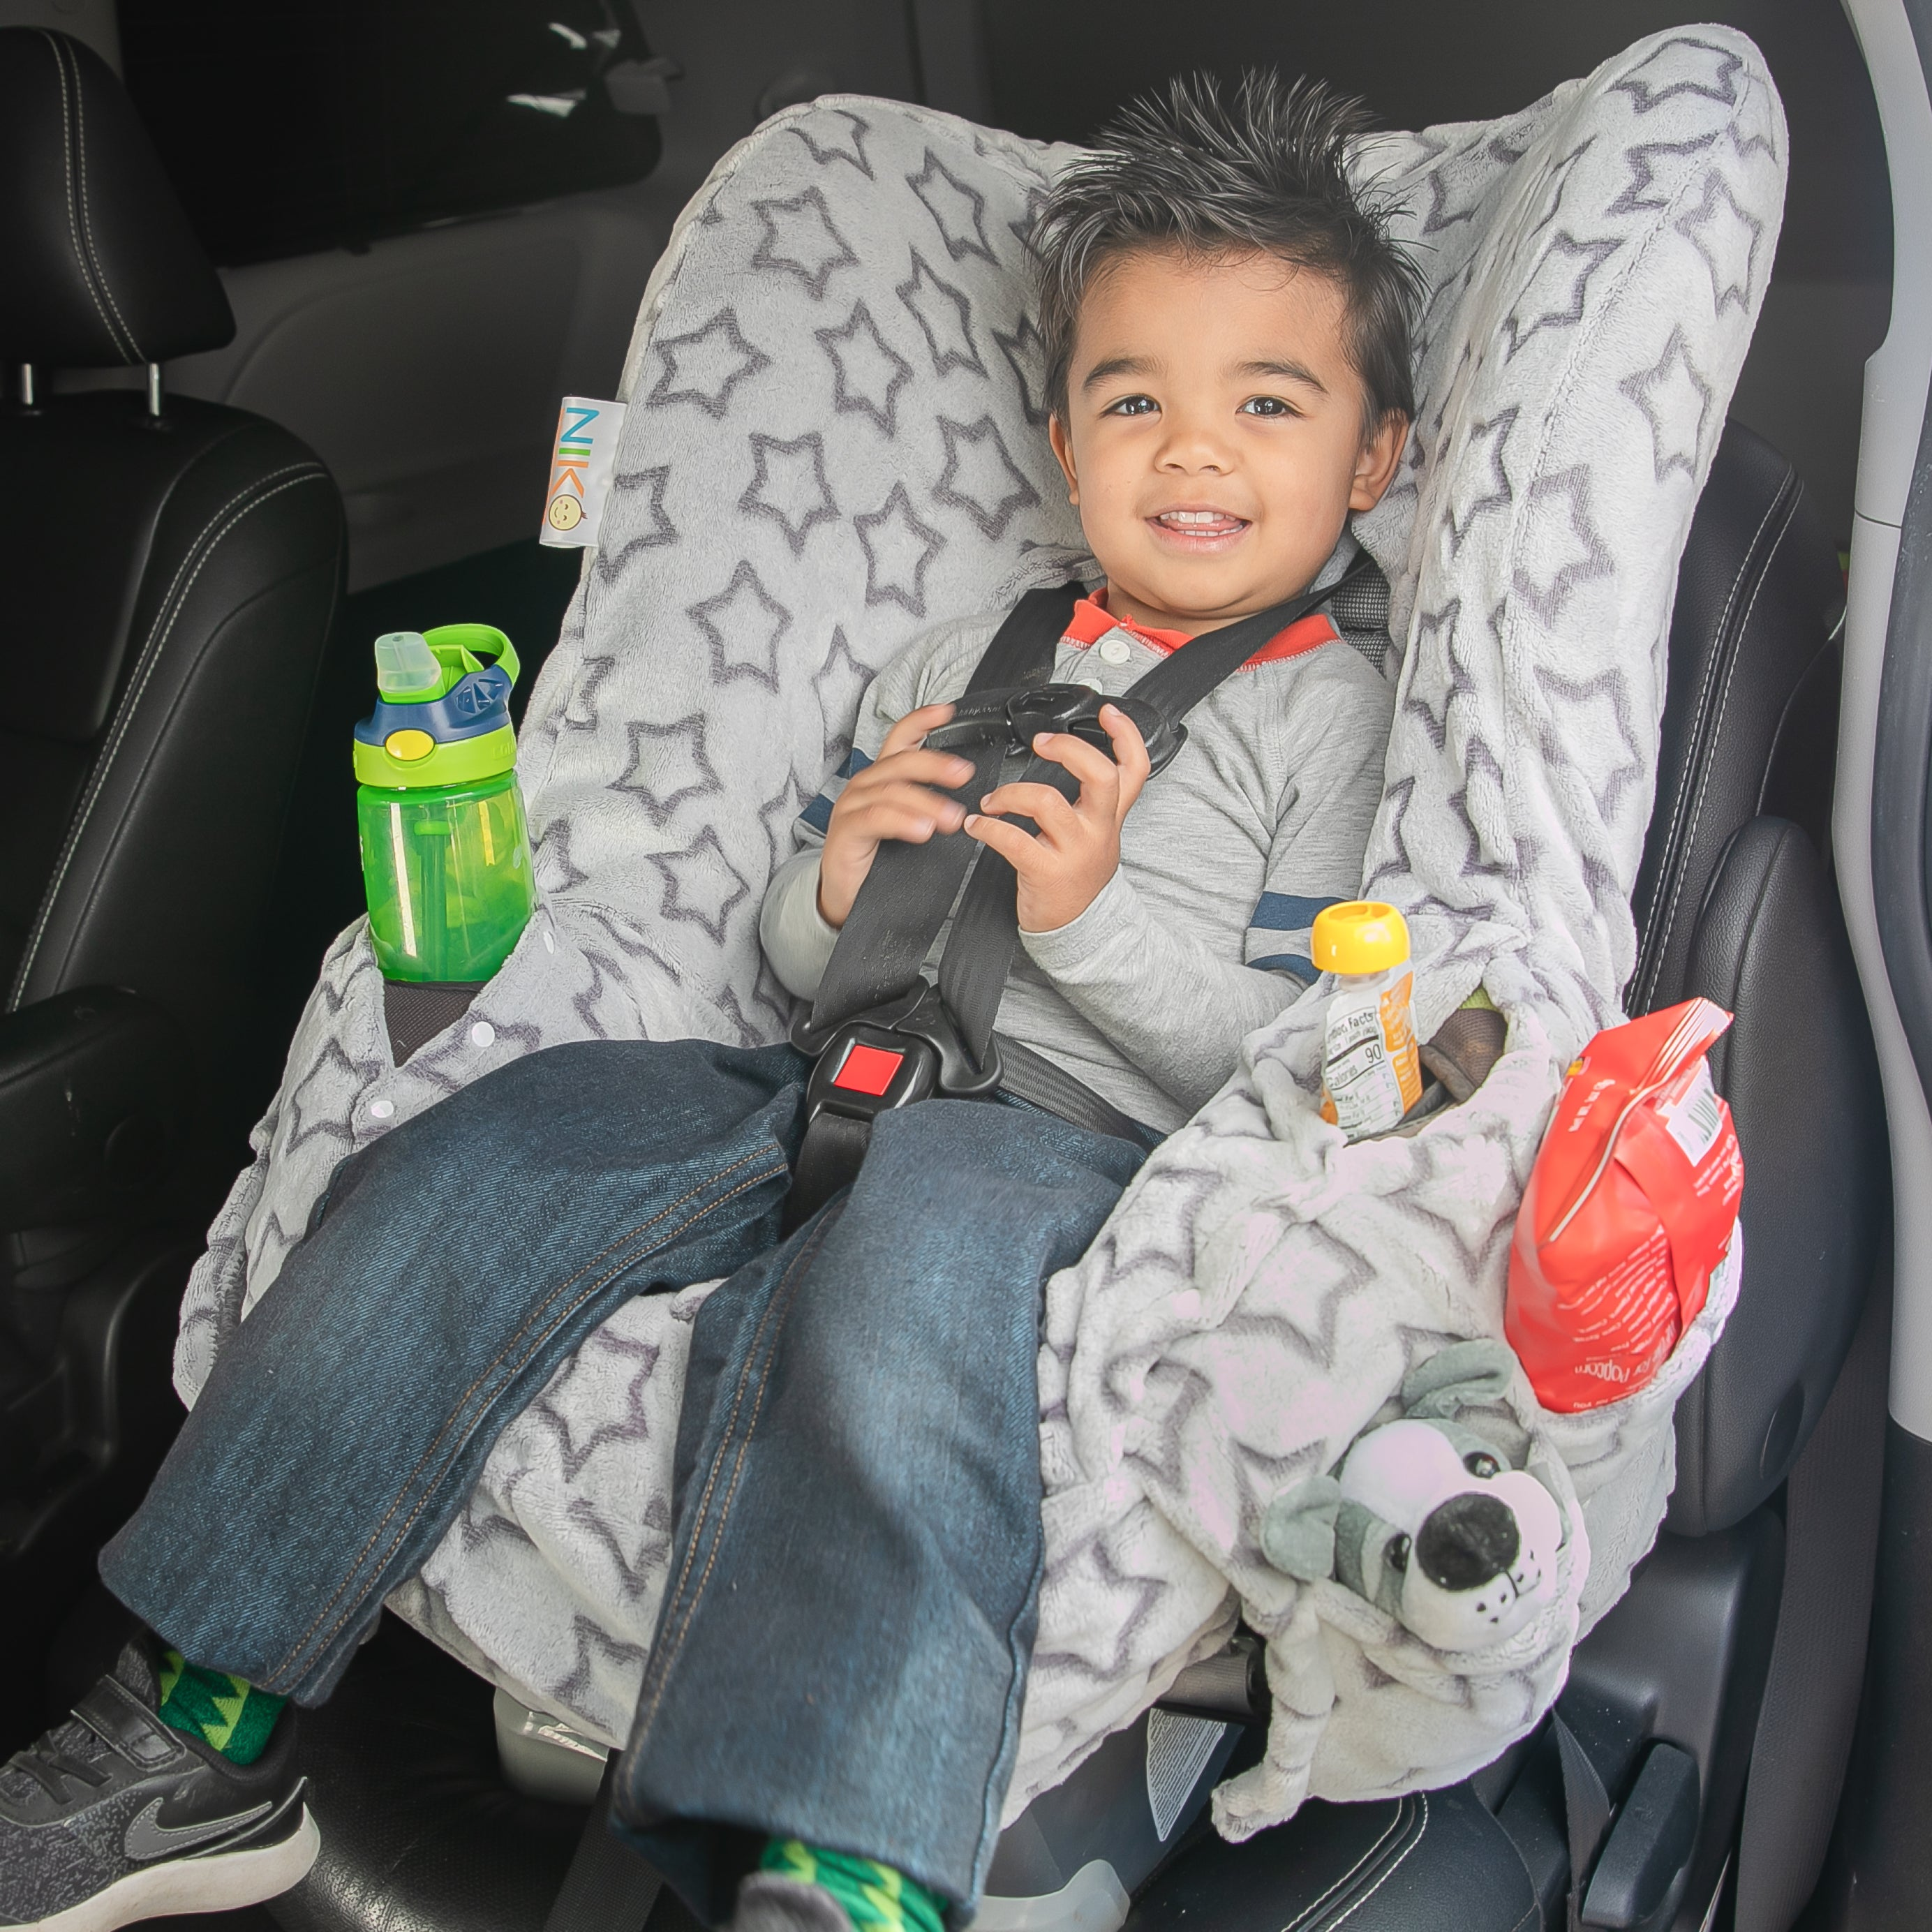 Niko Easy Wash Children's Car Seat Cover & Liner - Minky - Silver Star